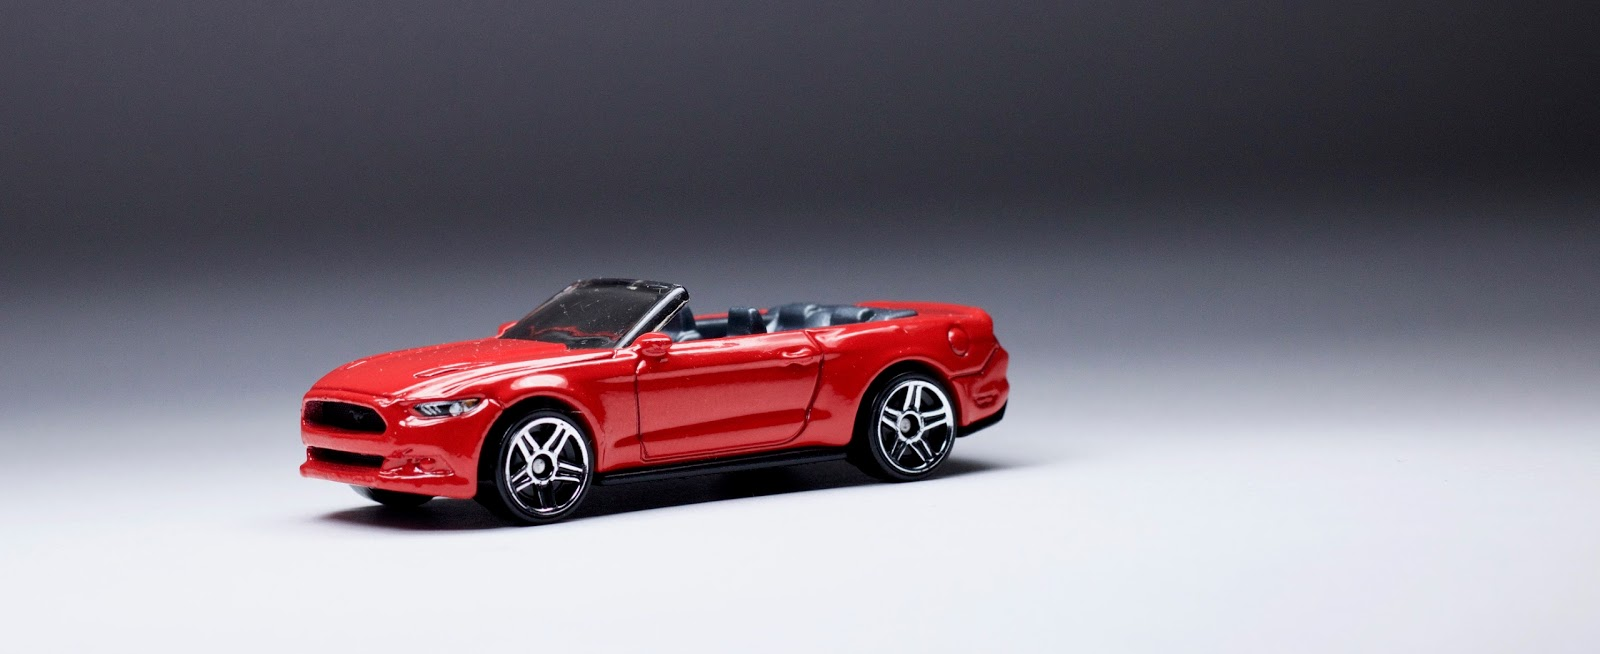 And another one! The Hot Wheels Mustang GT Convertible completes a ...